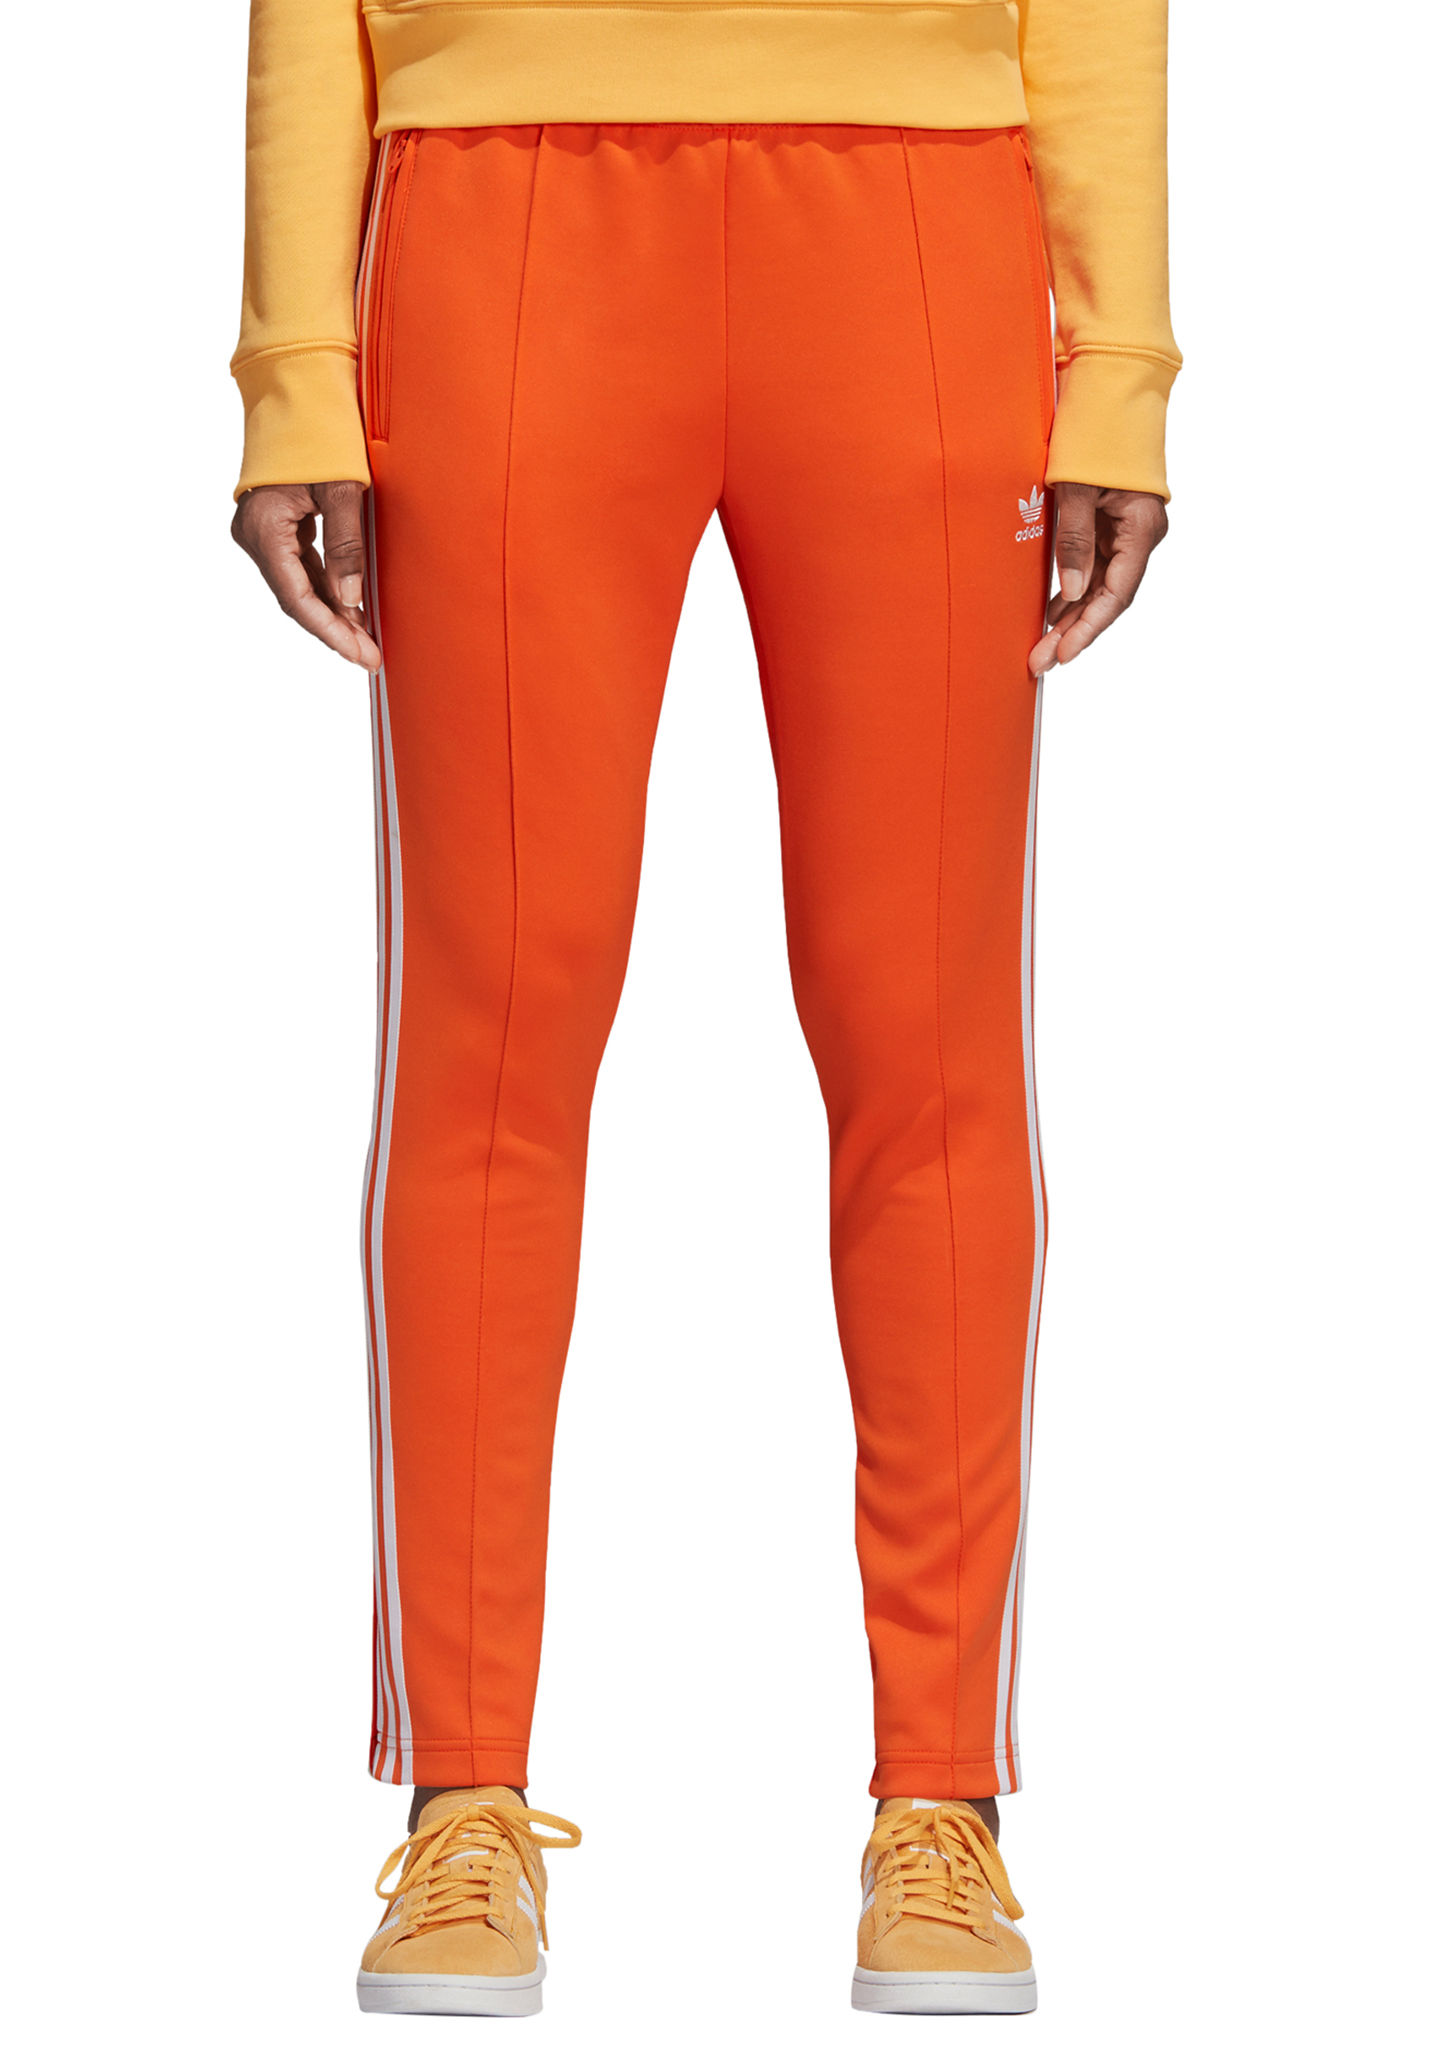 Sst Pantalon Pour De Originals Survêtement Adidas Orange Femme 4q5wX